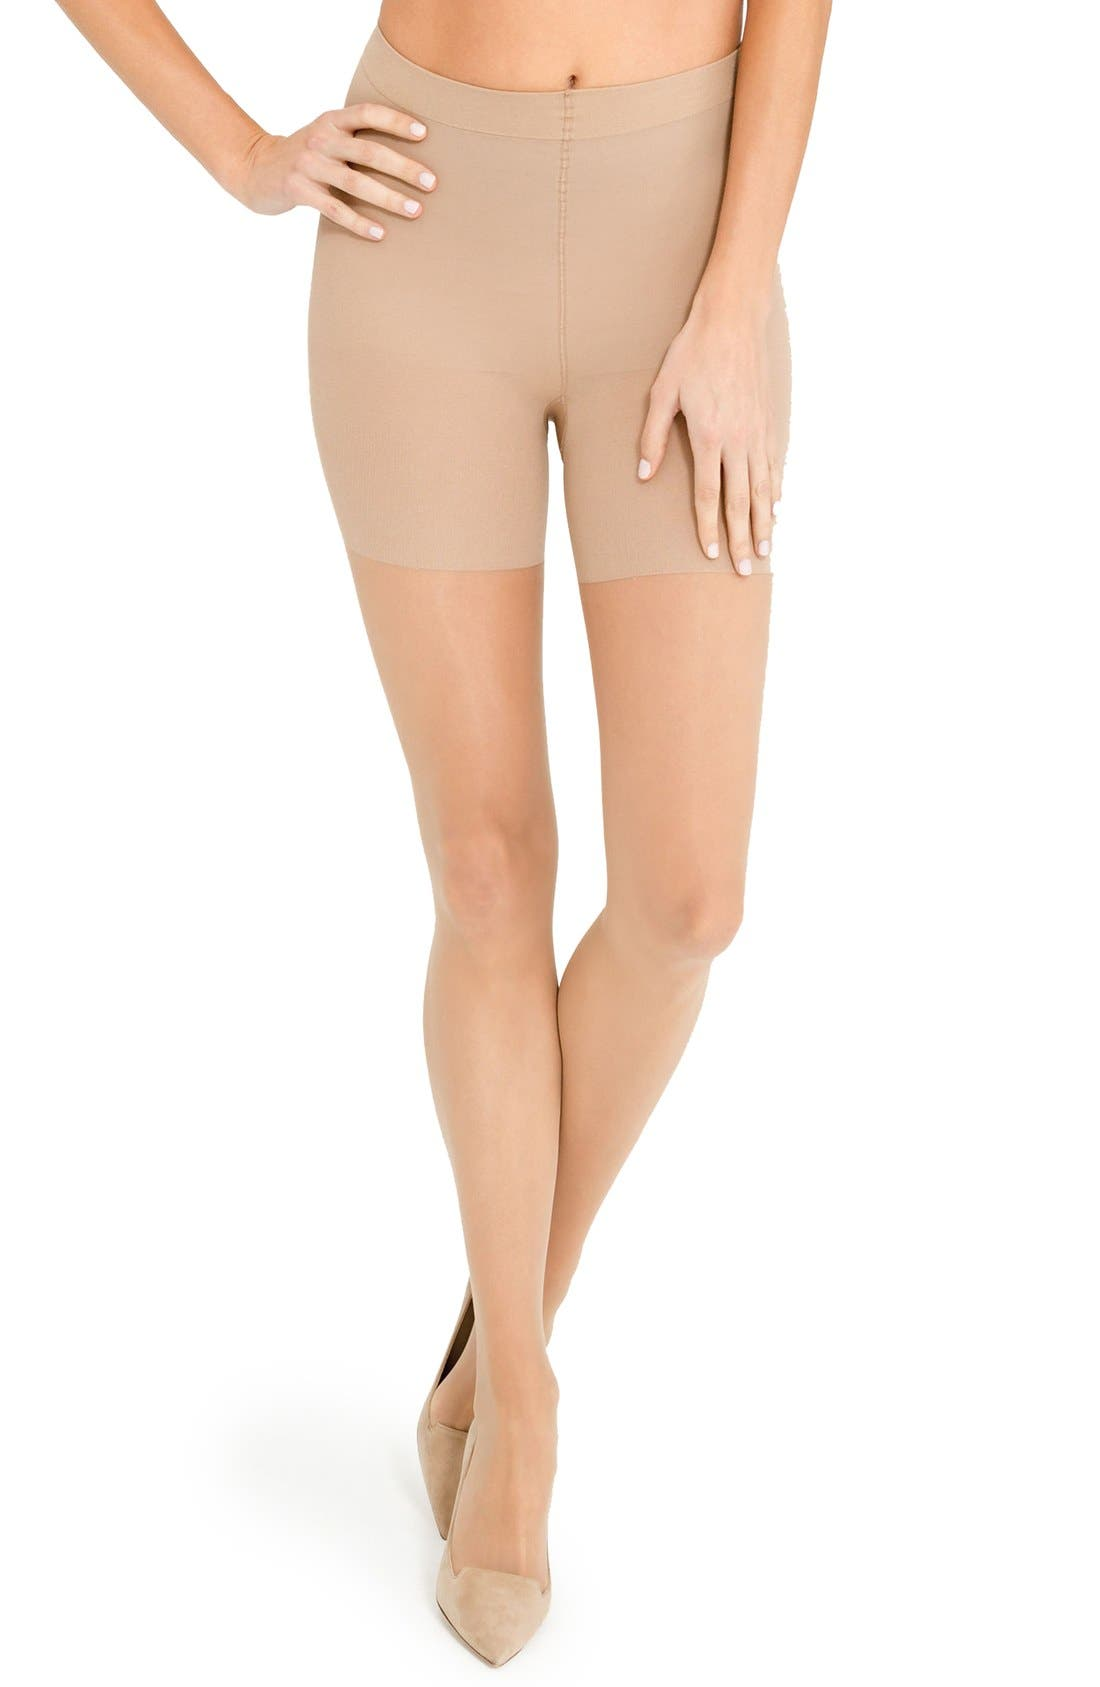 Alternate Image 1 Selected - SPANX® Luxe Leg Pantyhose